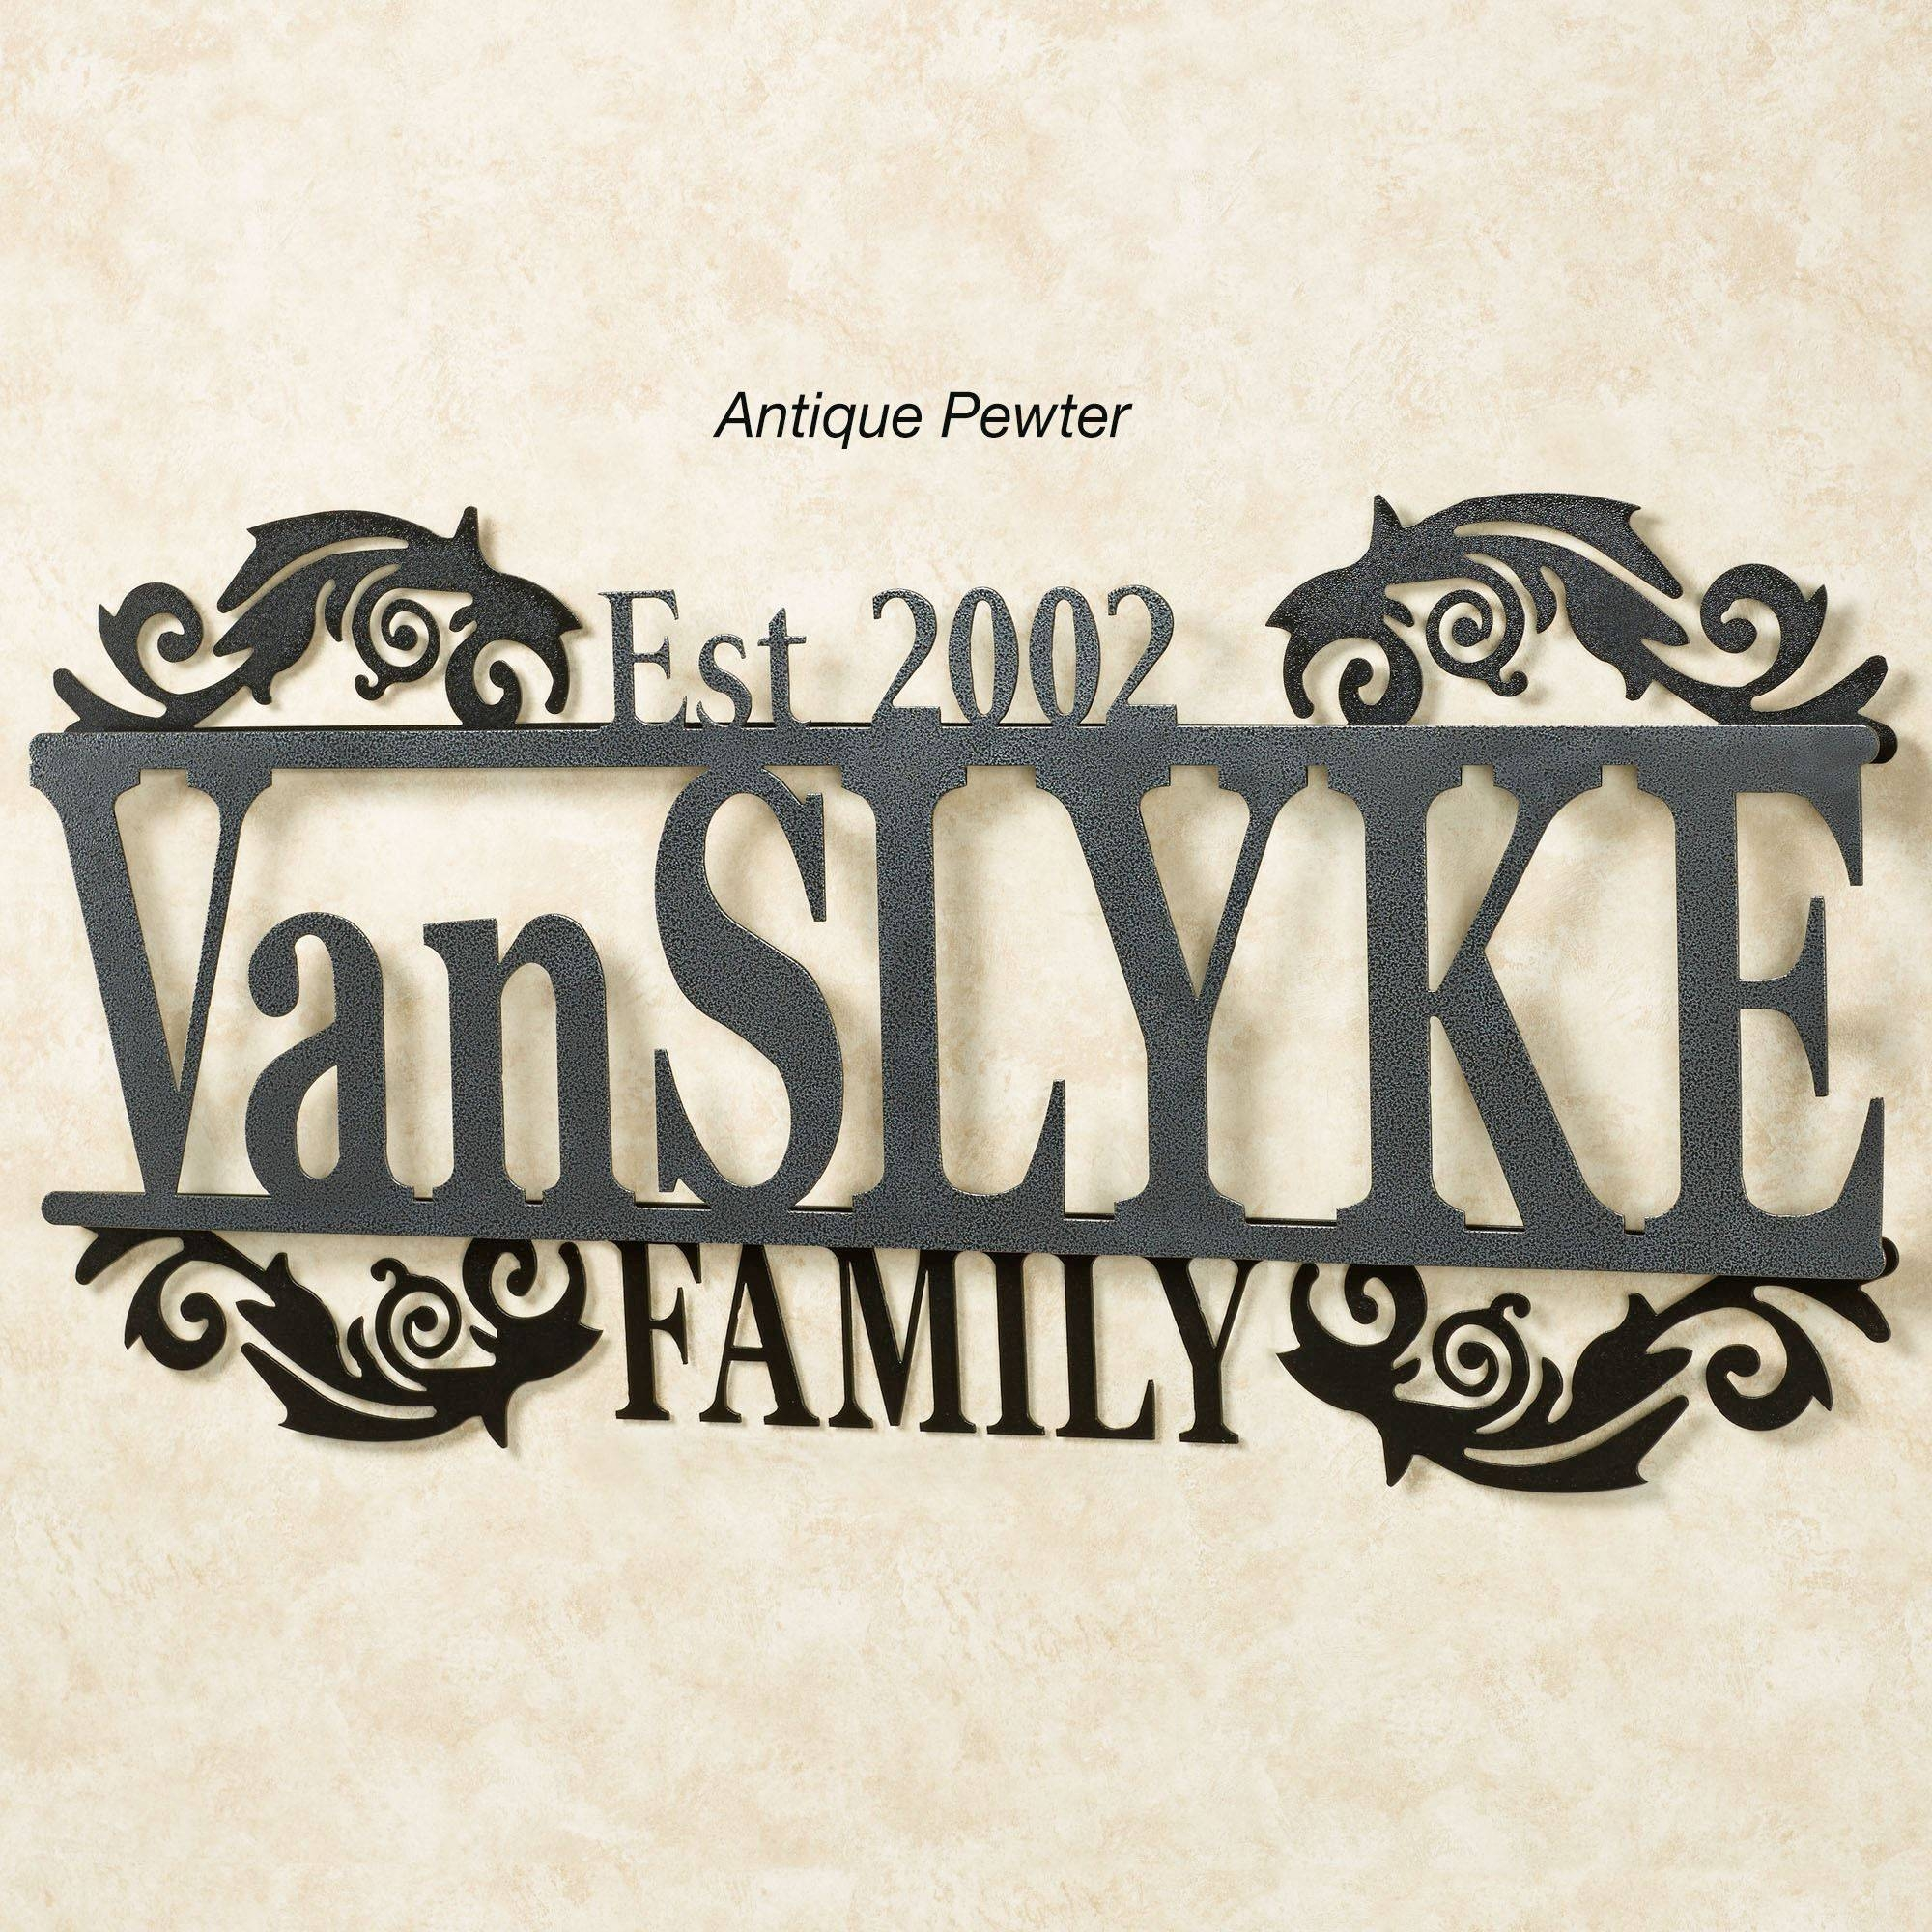 Legacy Family Established Year Personalized Metal Wall Art Sign Pertaining To Current Personalized Metal Wall Art (View 10 of 20)